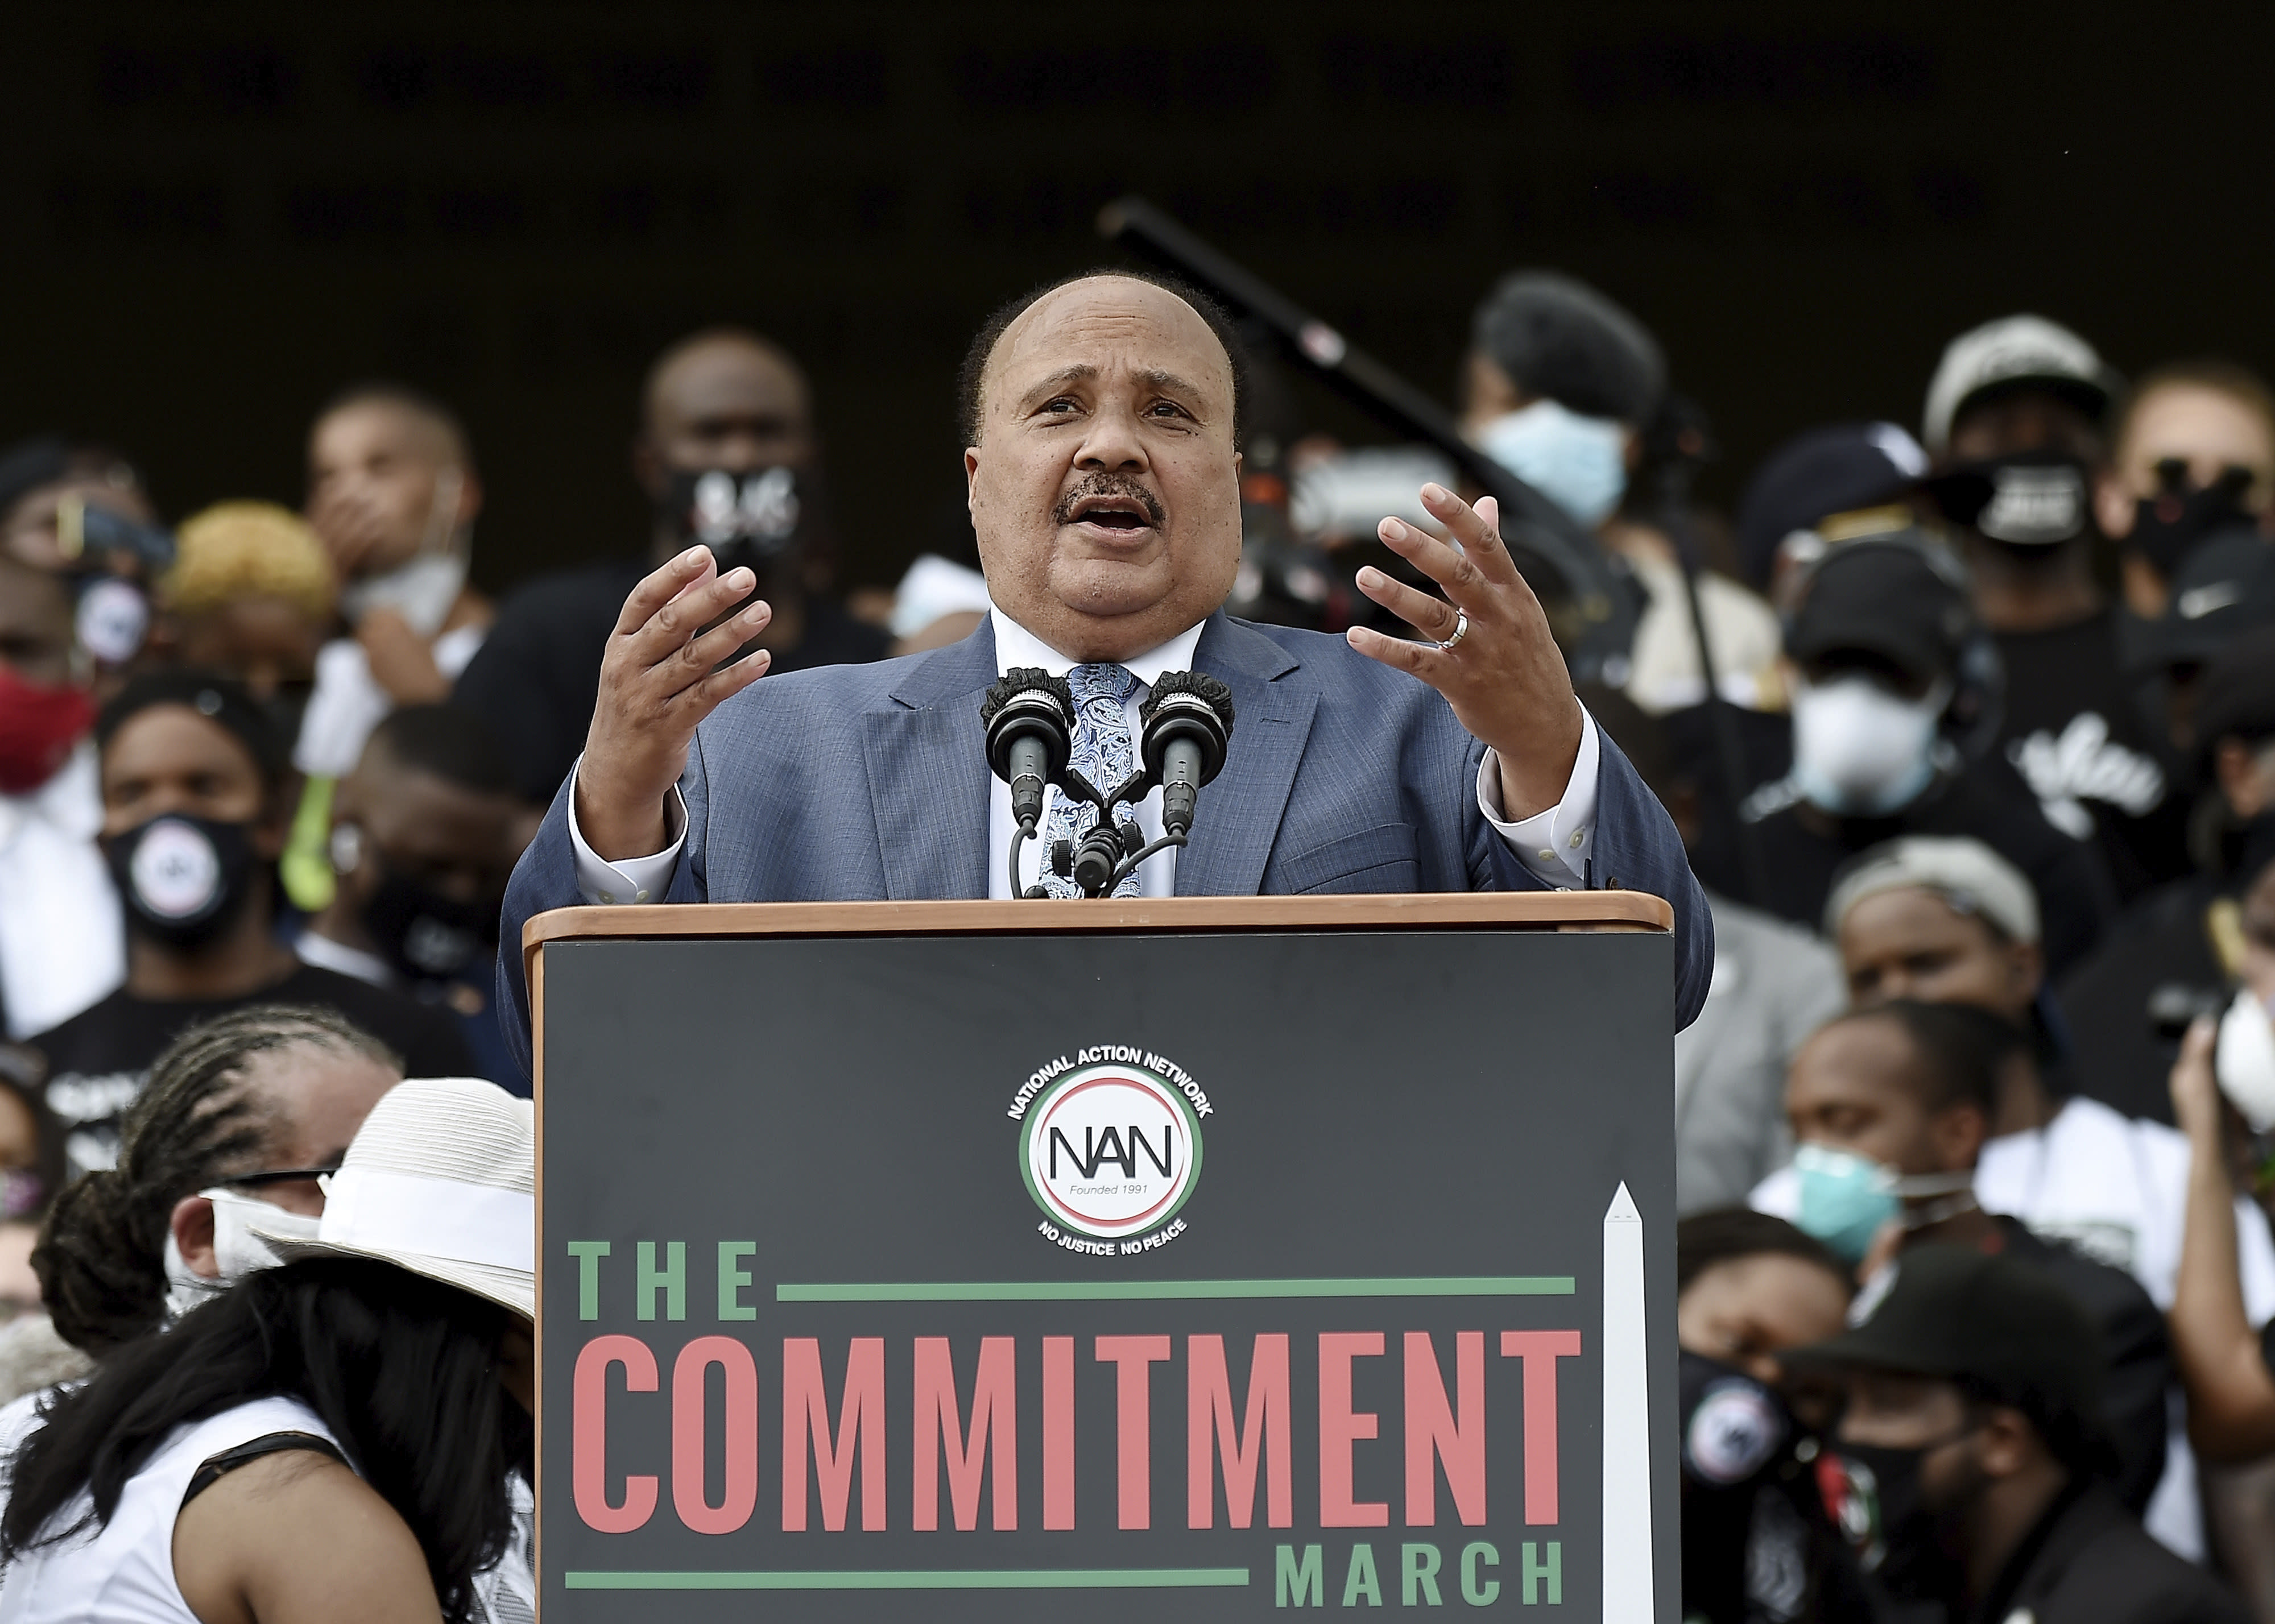 """Martin Luther King III speaks during the March on Washington, Friday Aug. 28, 2020, in Washington, on the 57th anniversary of the Rev. Martin Luther King Jr.'s """"I Have A Dream"""" speech. (Olivier Douliery/Pool via AP)"""